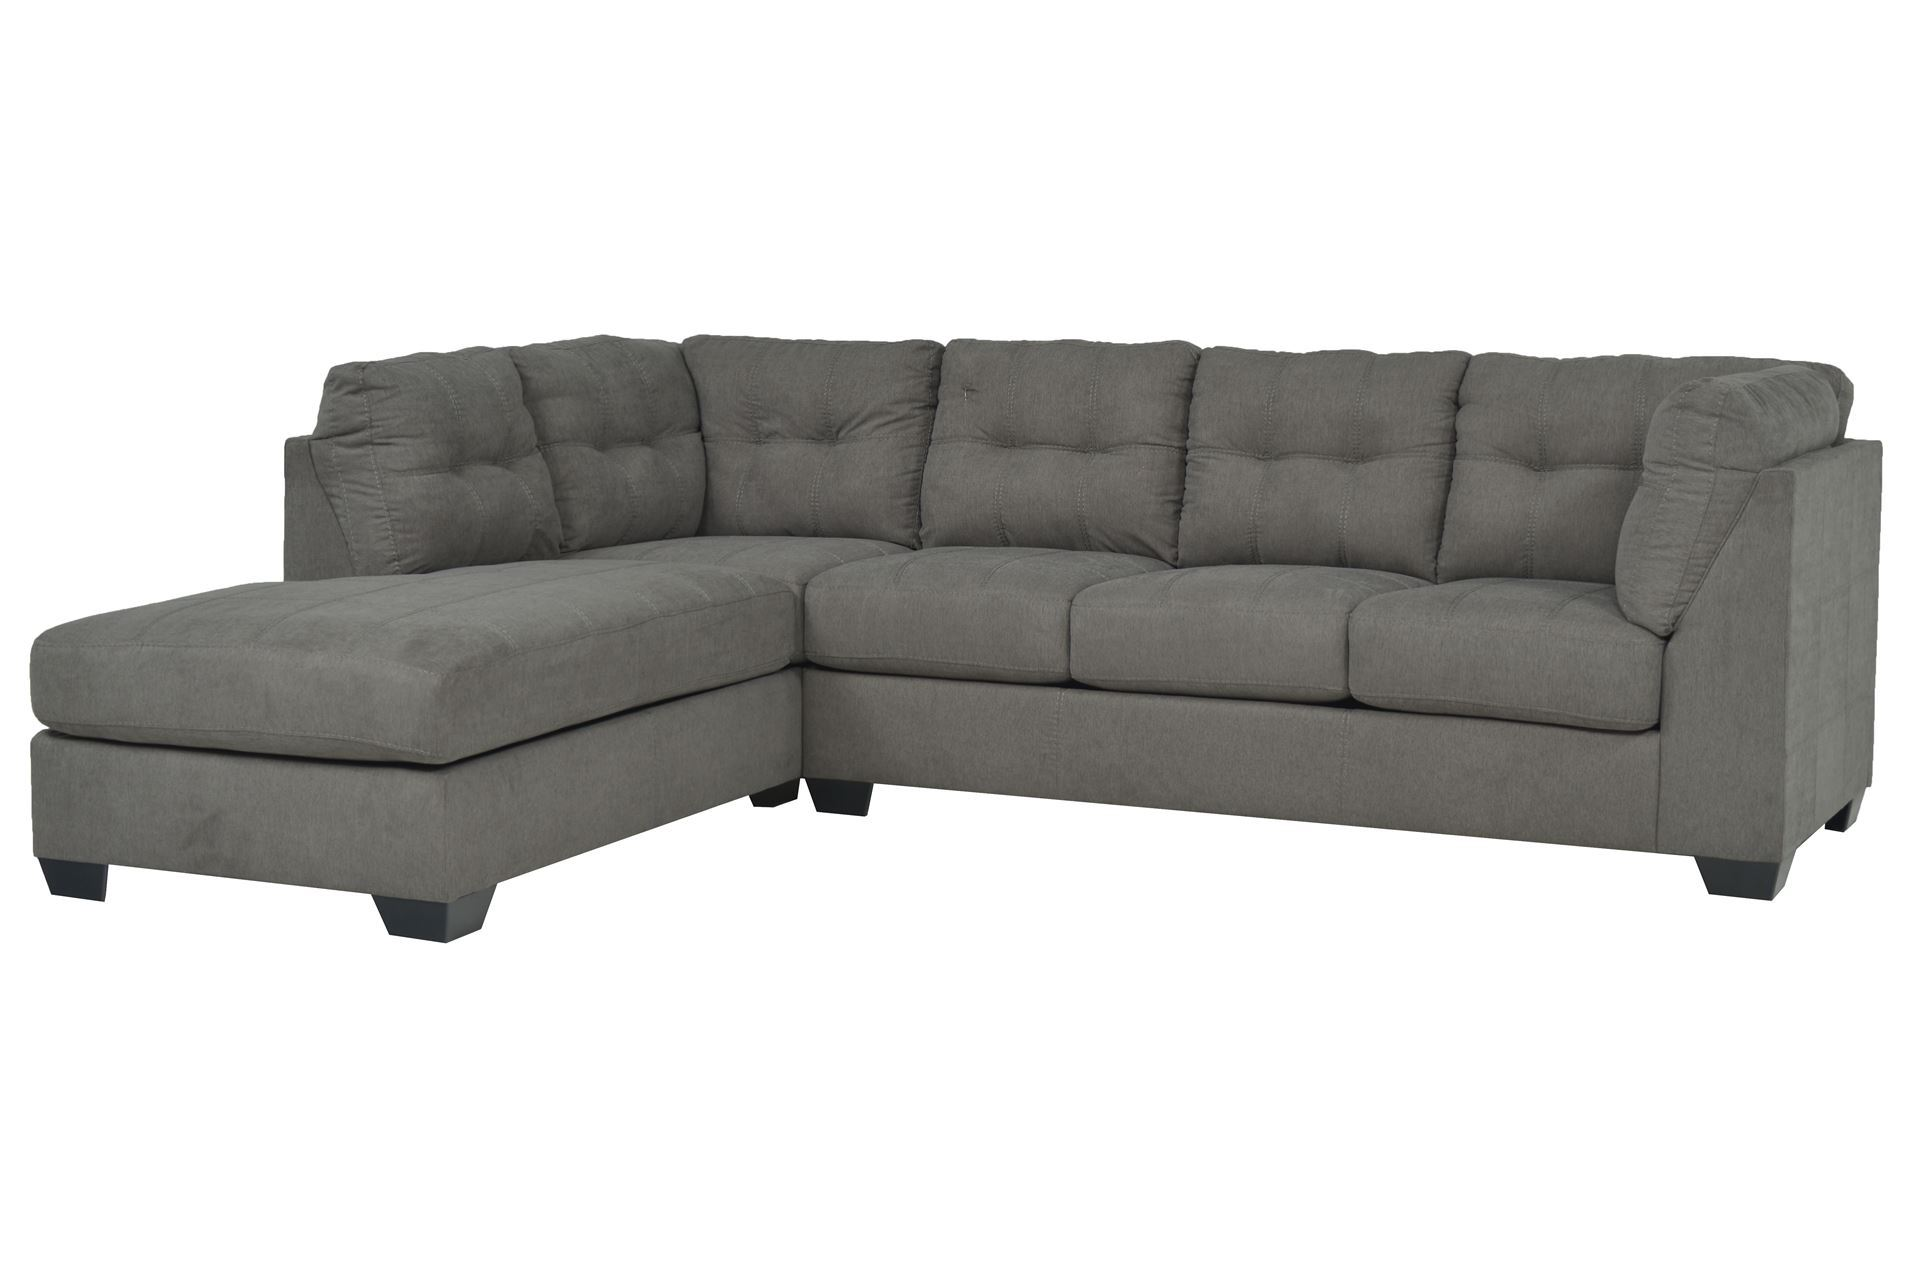 Maier charcoal 2 piece sectional w laf chaise signature for 2 piece chaise sectional